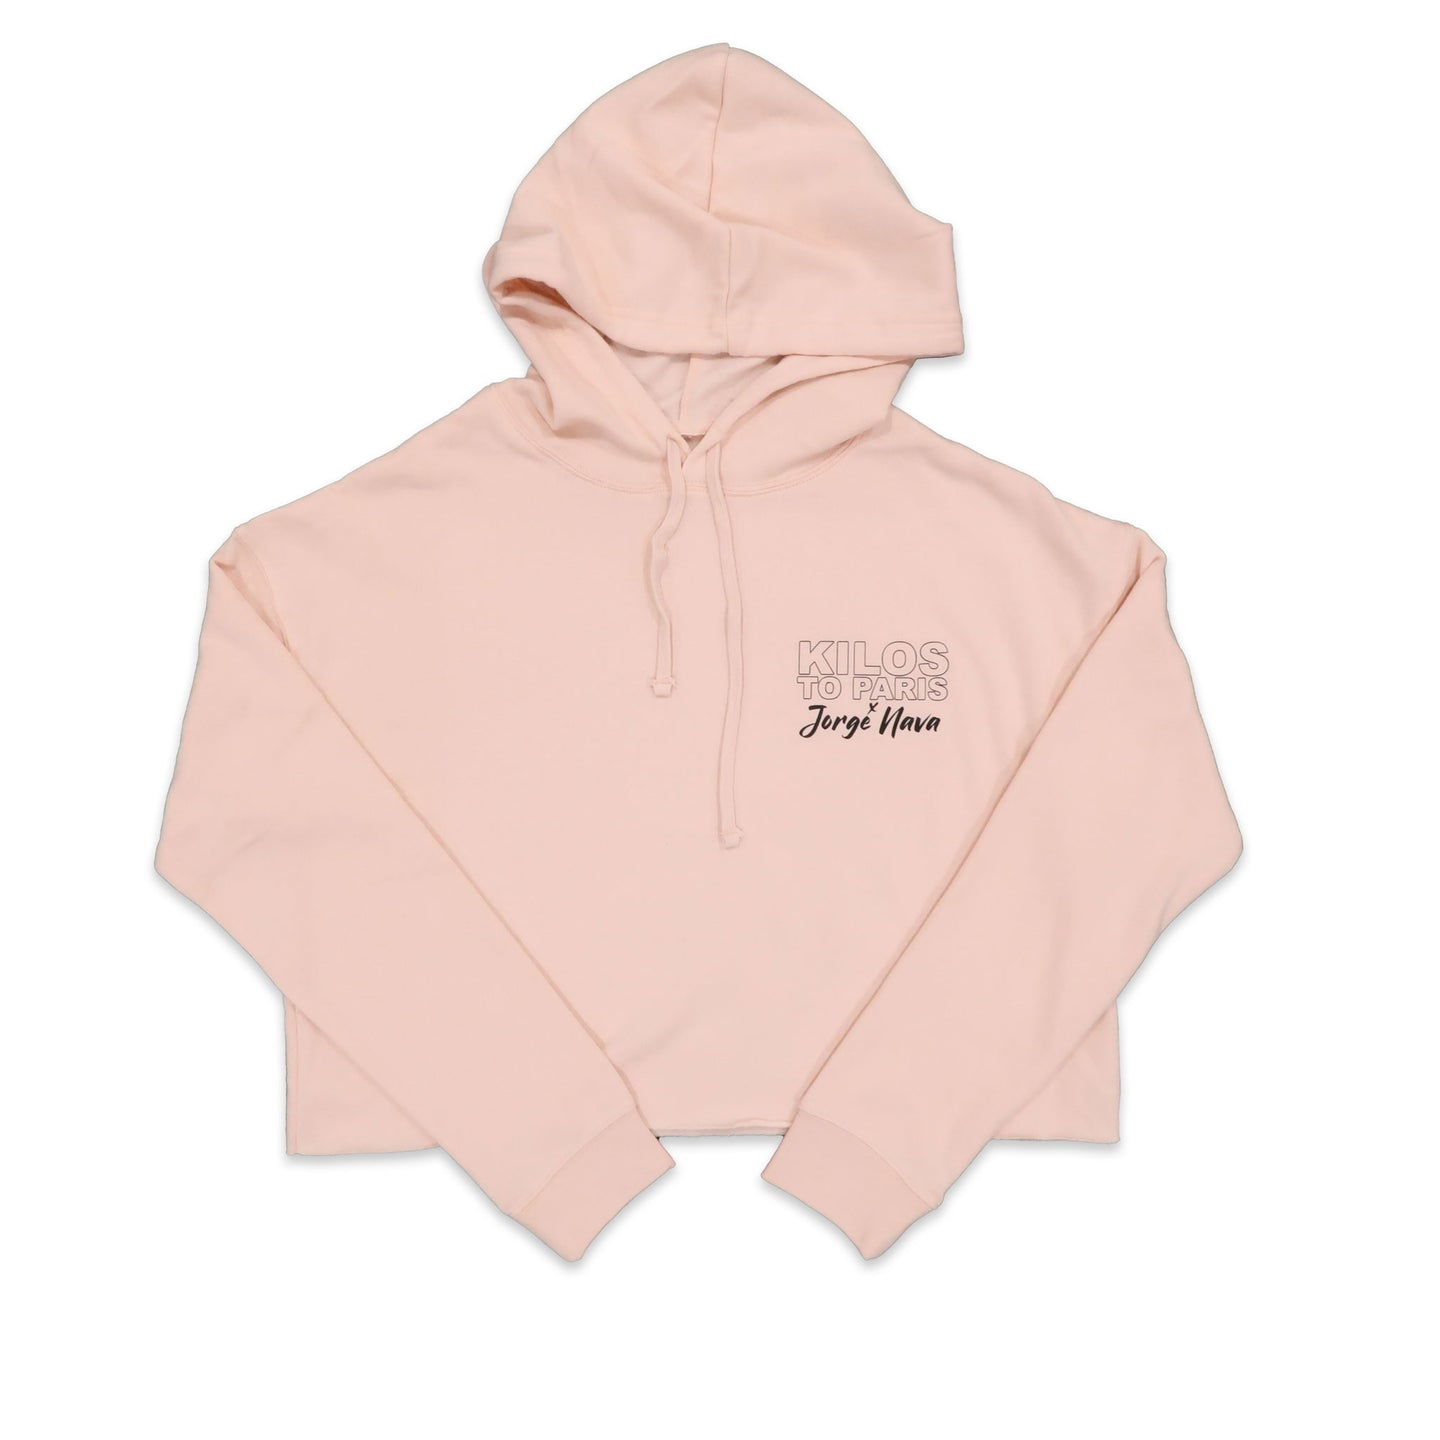 Kilos To Paris x Jorge Nava Crop Hoodie in Blush